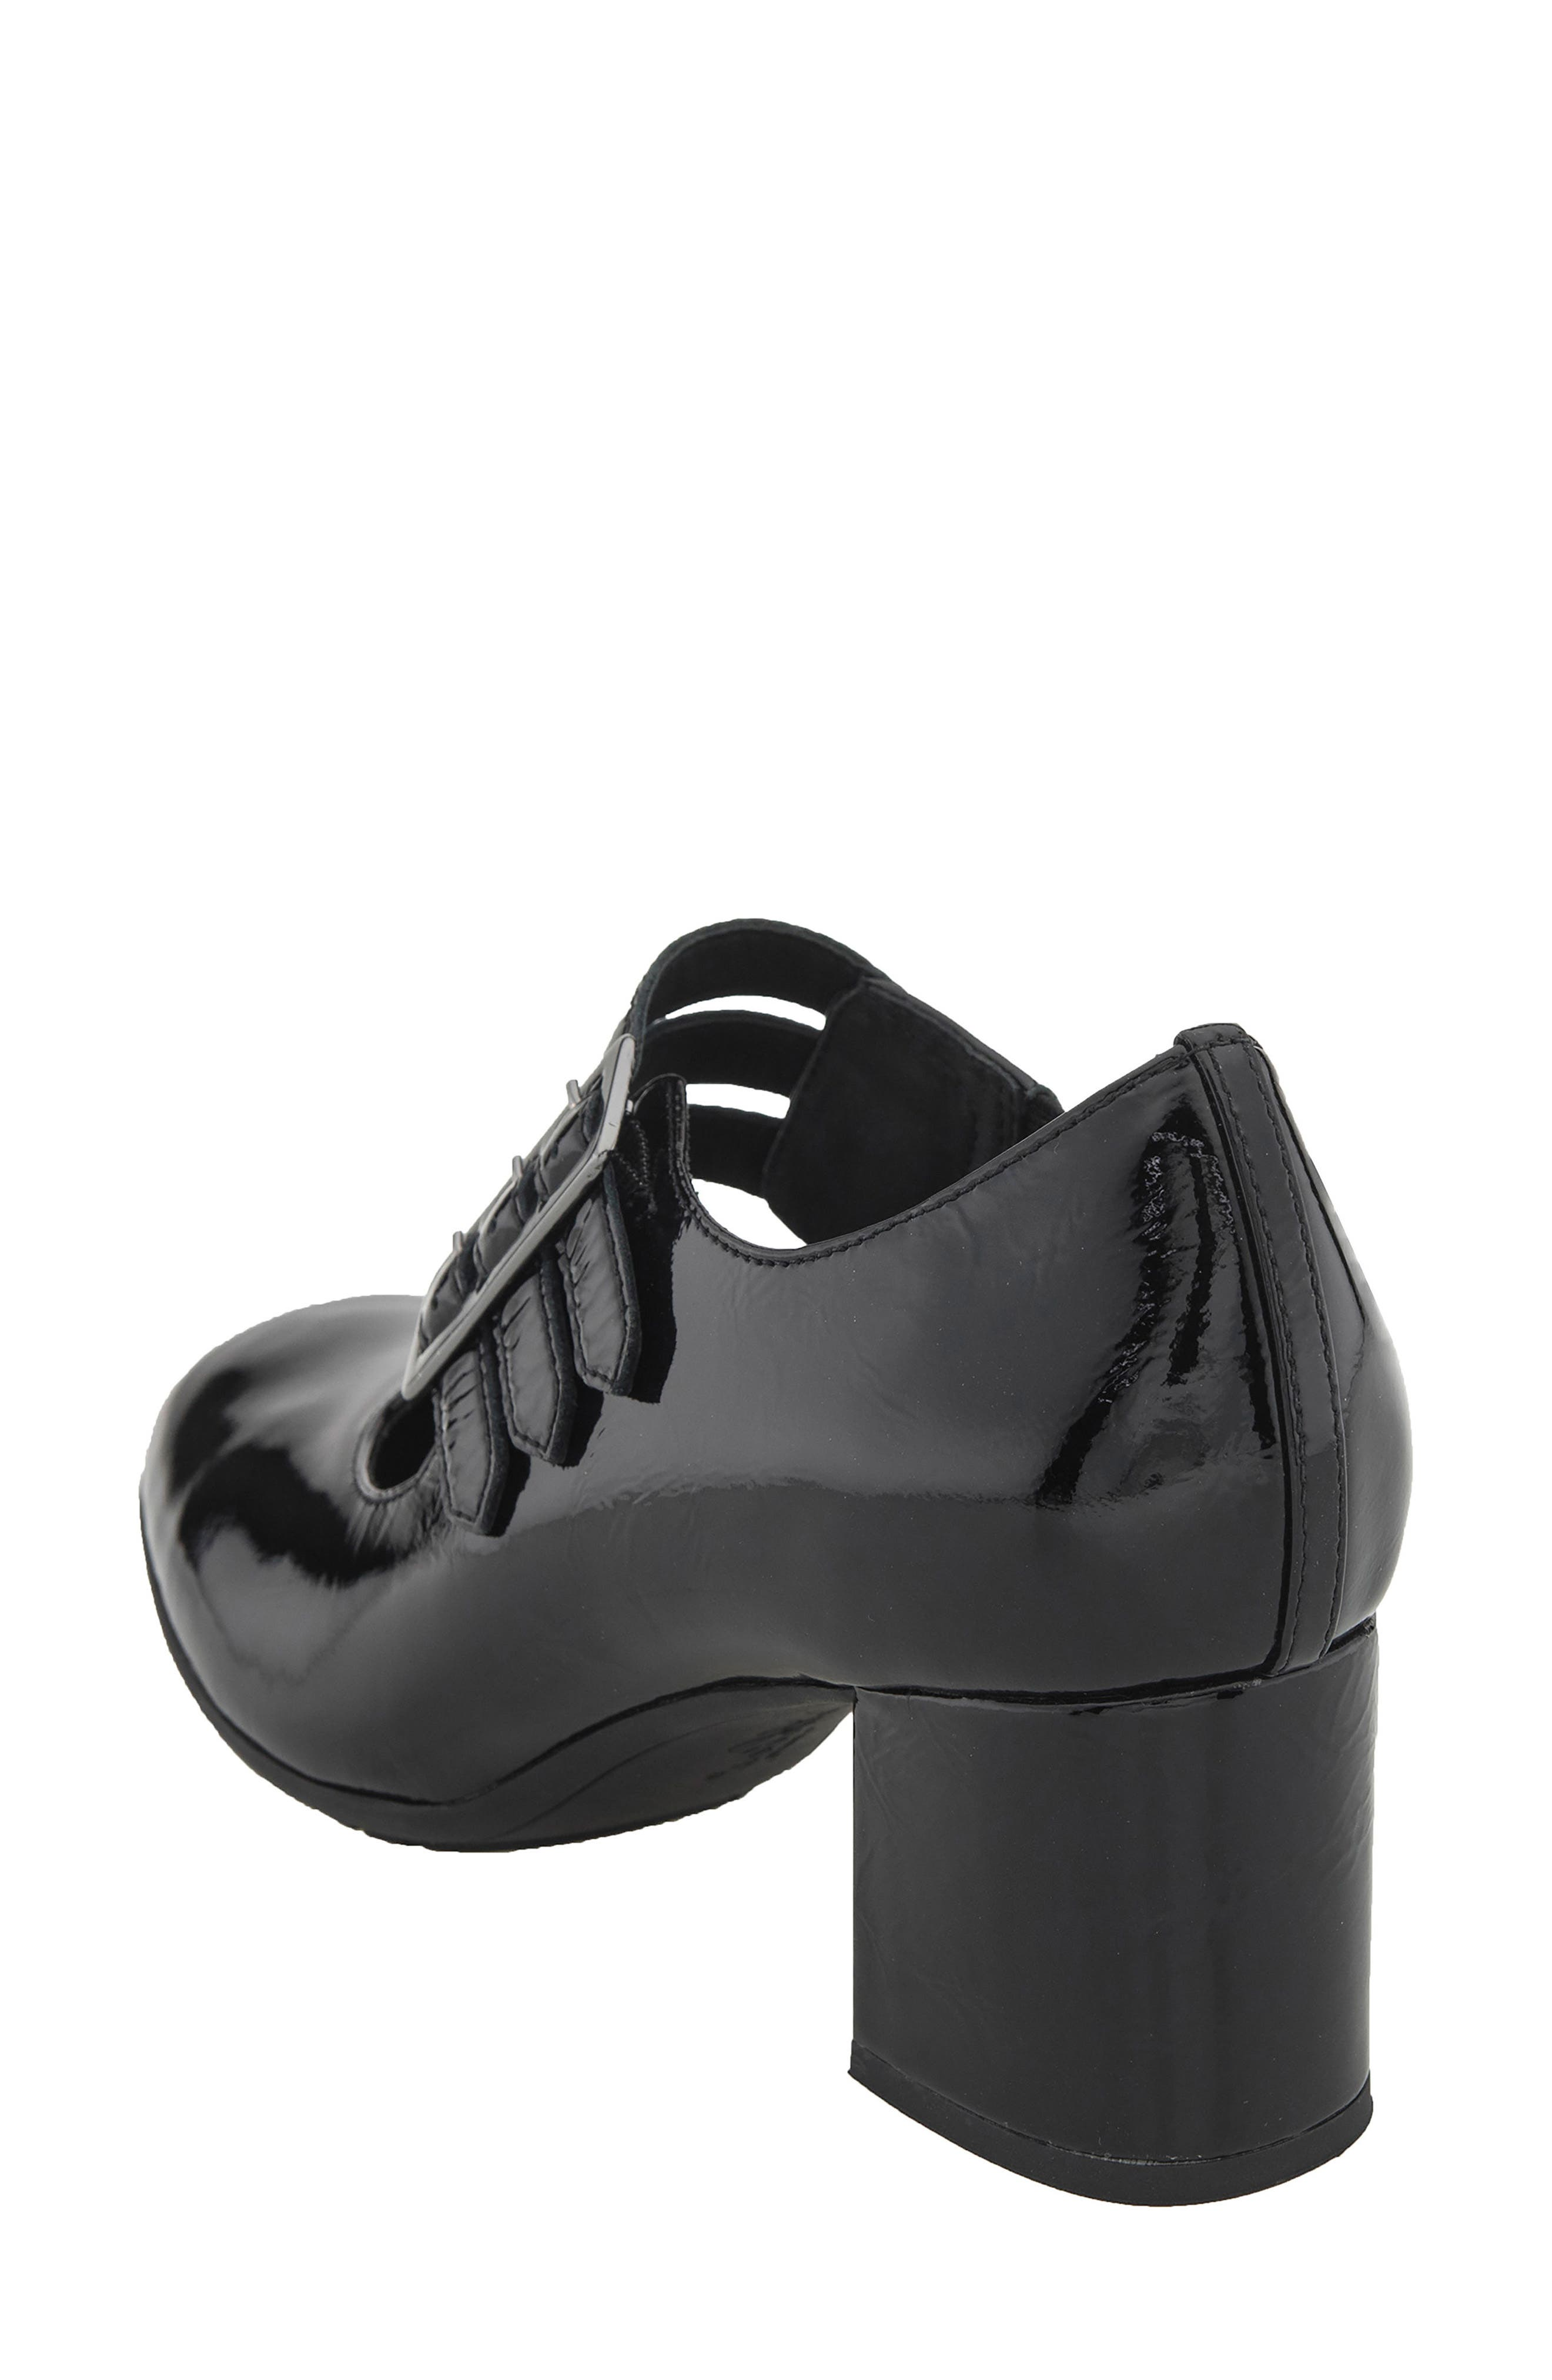 Fortuna Mary Jane Pump,                             Alternate thumbnail 2, color,                             Black Patent Leather